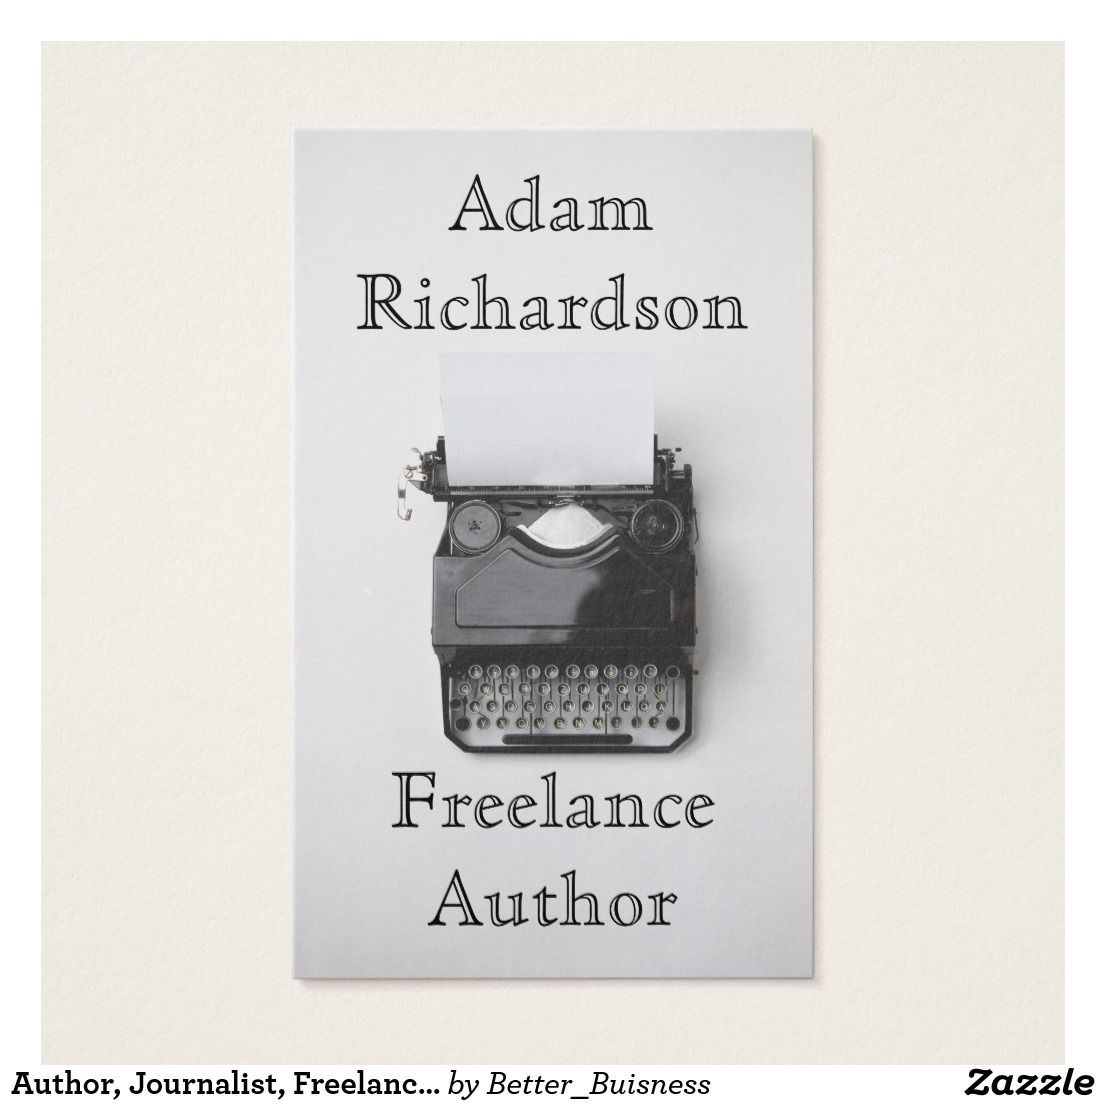 Author, Journalist, Freelance, Writer , Editor. Your business card ...